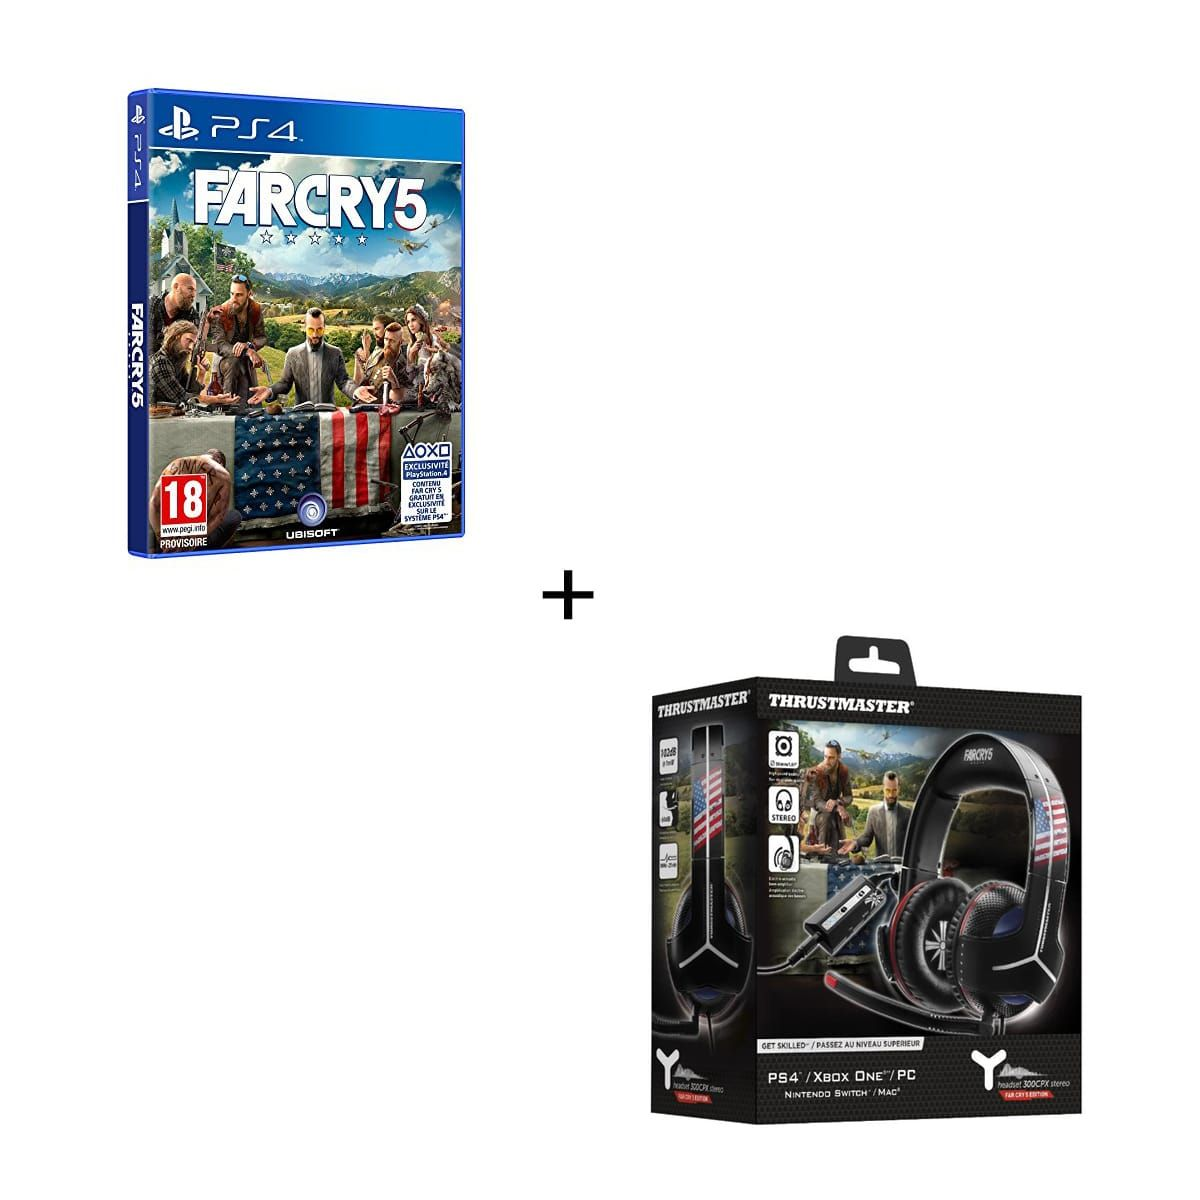 Bon Plan : Casque Gaming Thrustmaster + far Cry 5 à 86,98 euros (au lieu de 121,98...)